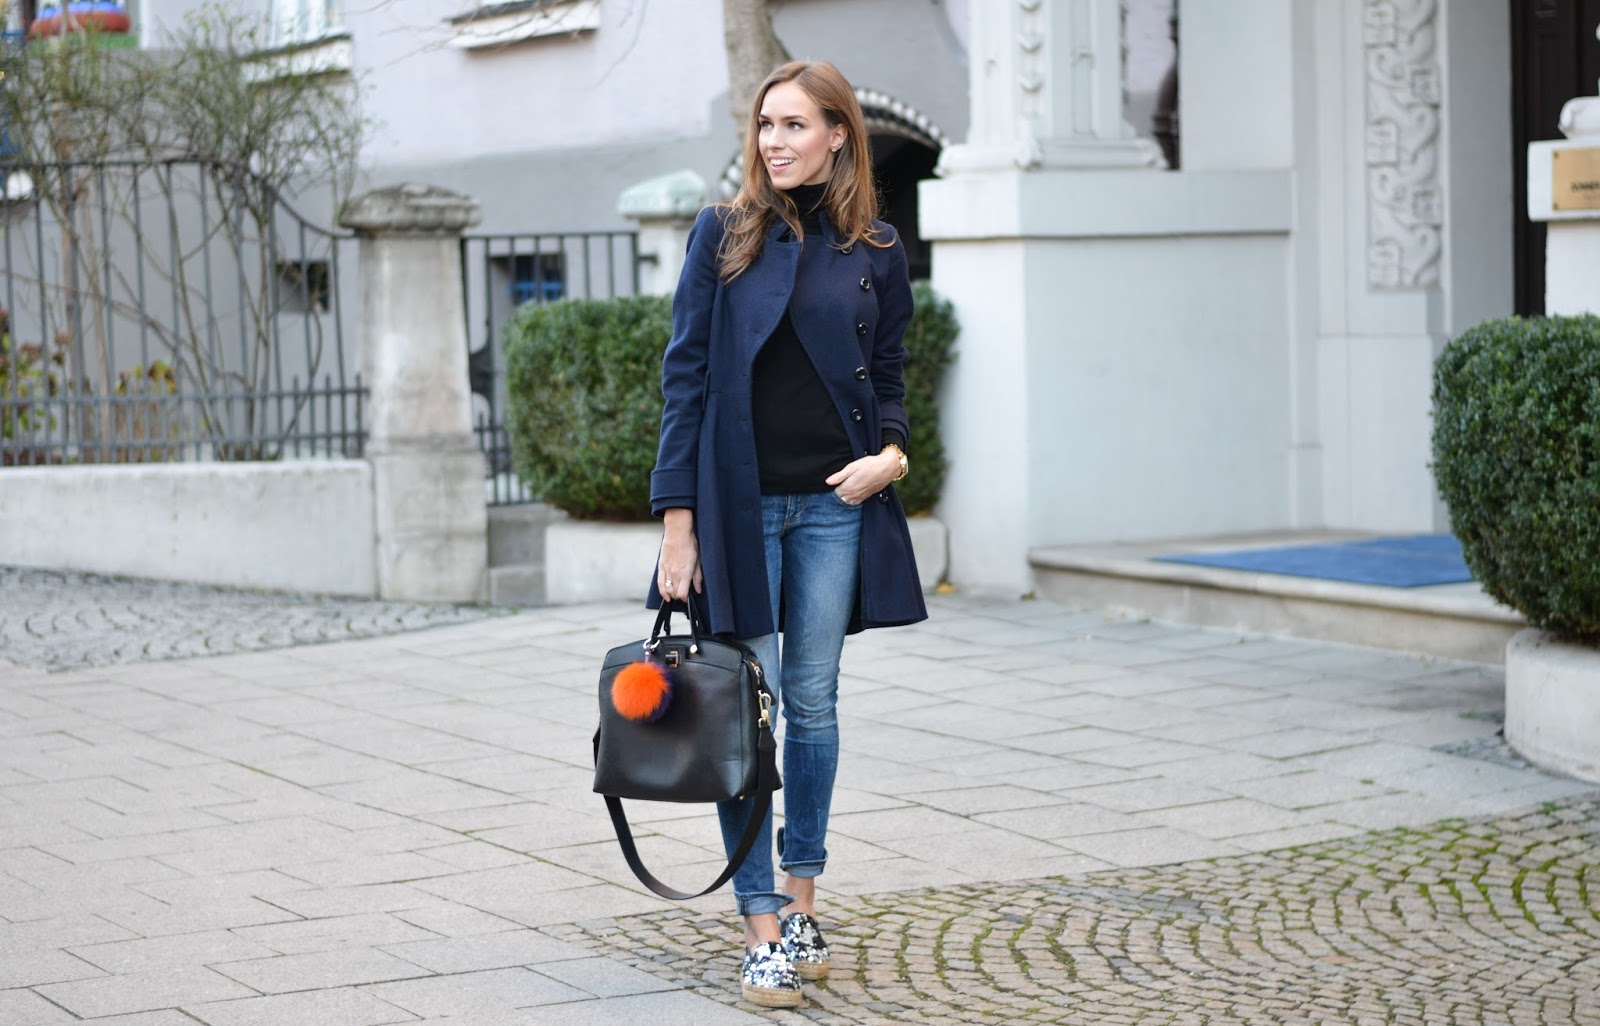 kristjaana mere casual feminine winter outfit with jeans